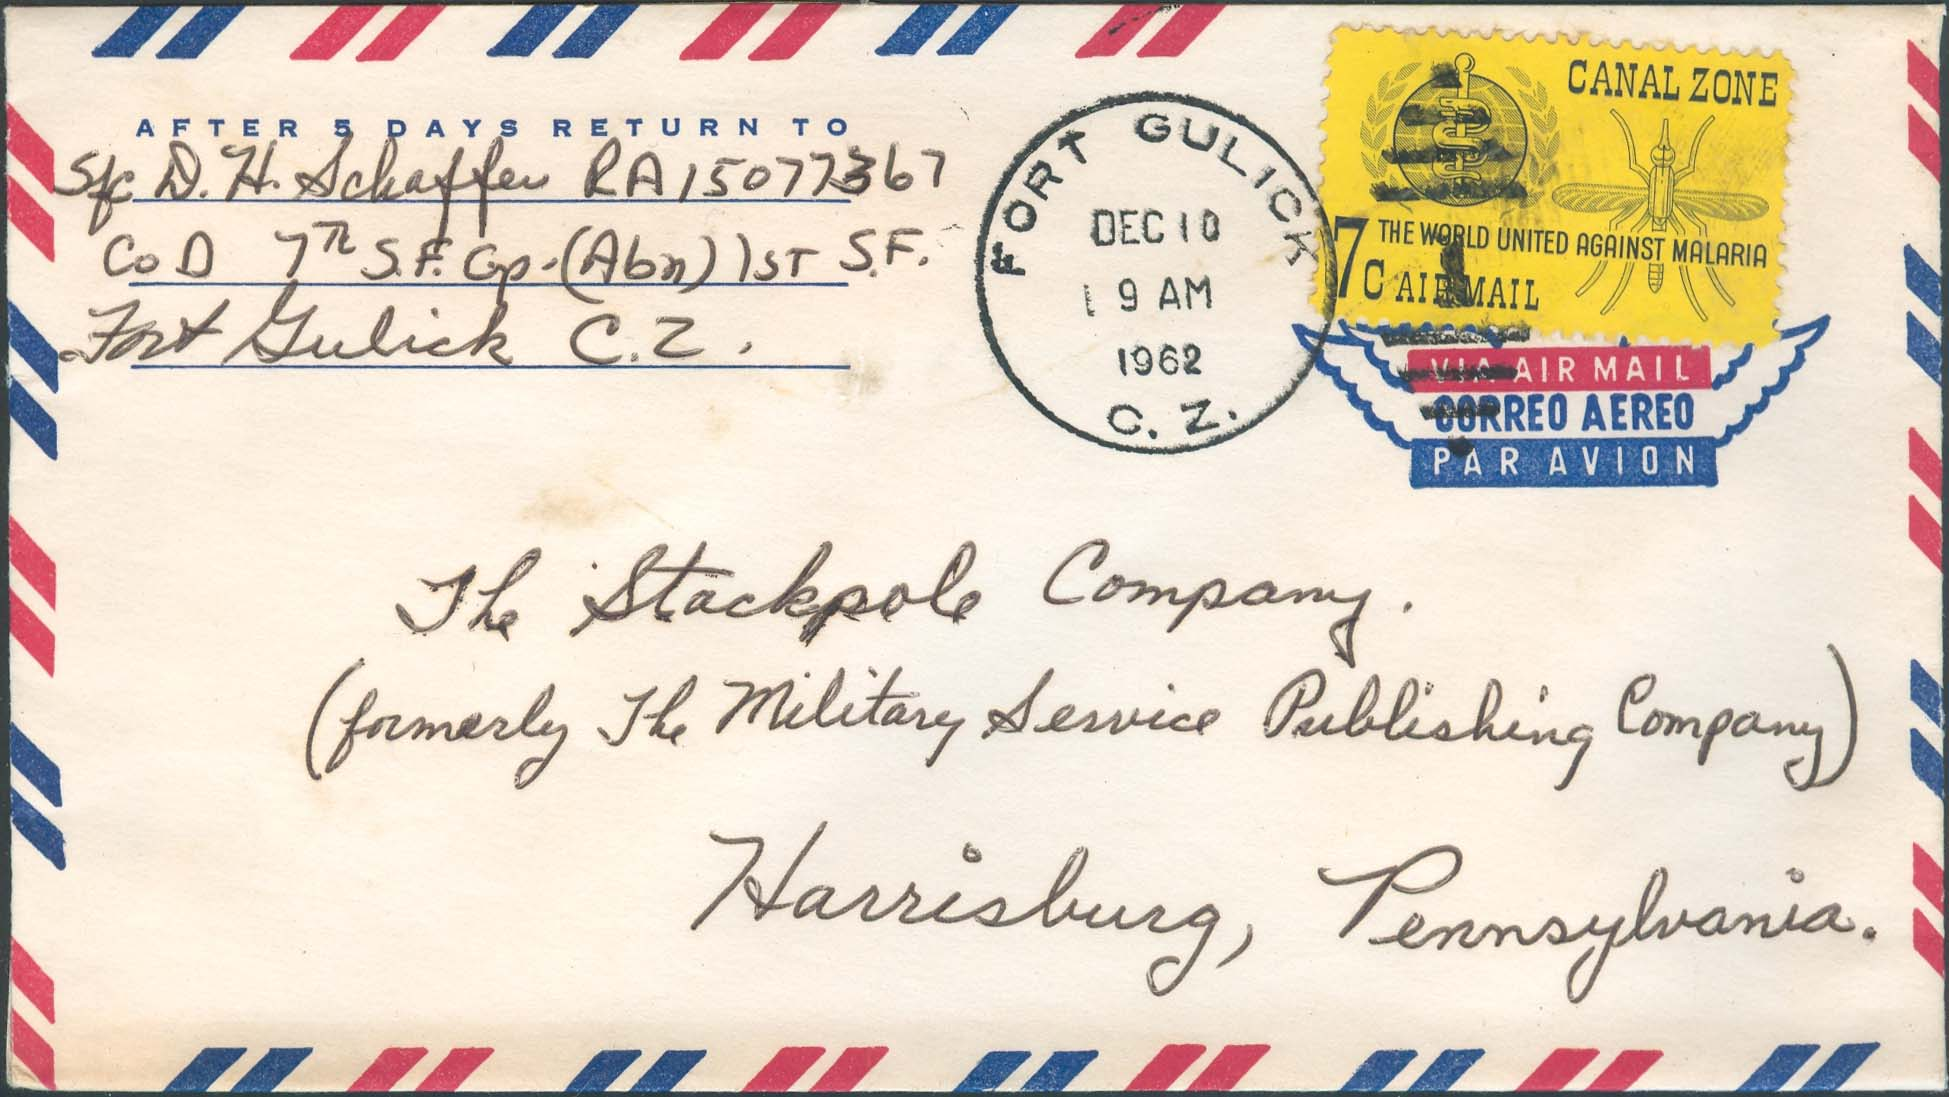 December 10, 1962, Fort Gulick, CZ to Harrisburg, PN